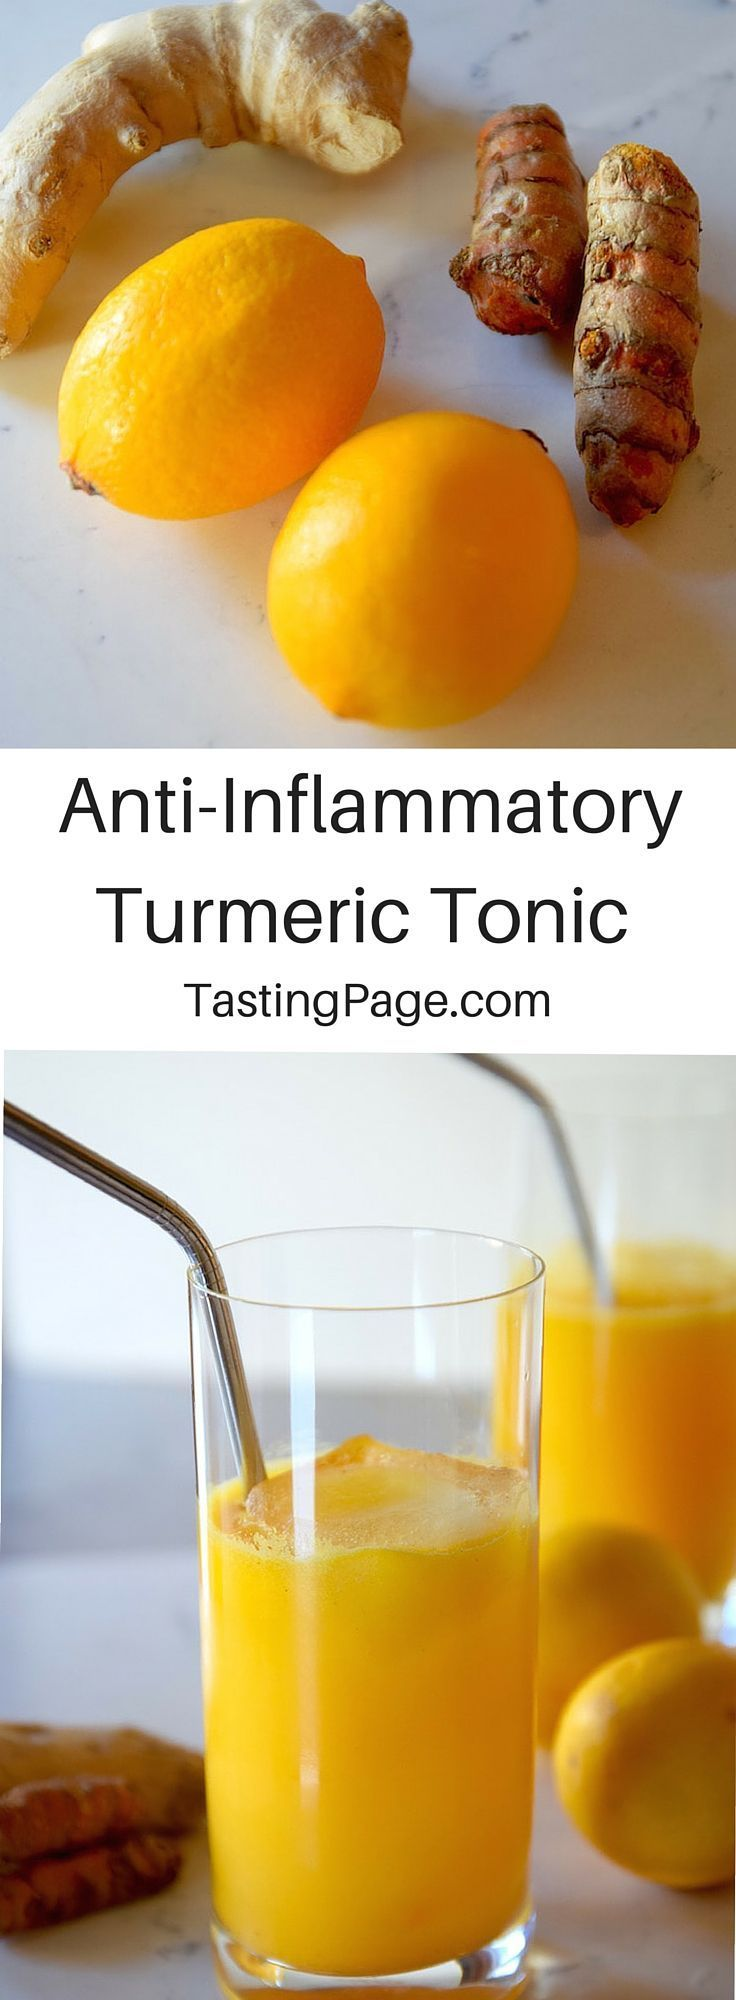 Stay healthy this holiday season with this Anti-Inflammatory Turmeric Tonic | TastingPage.com